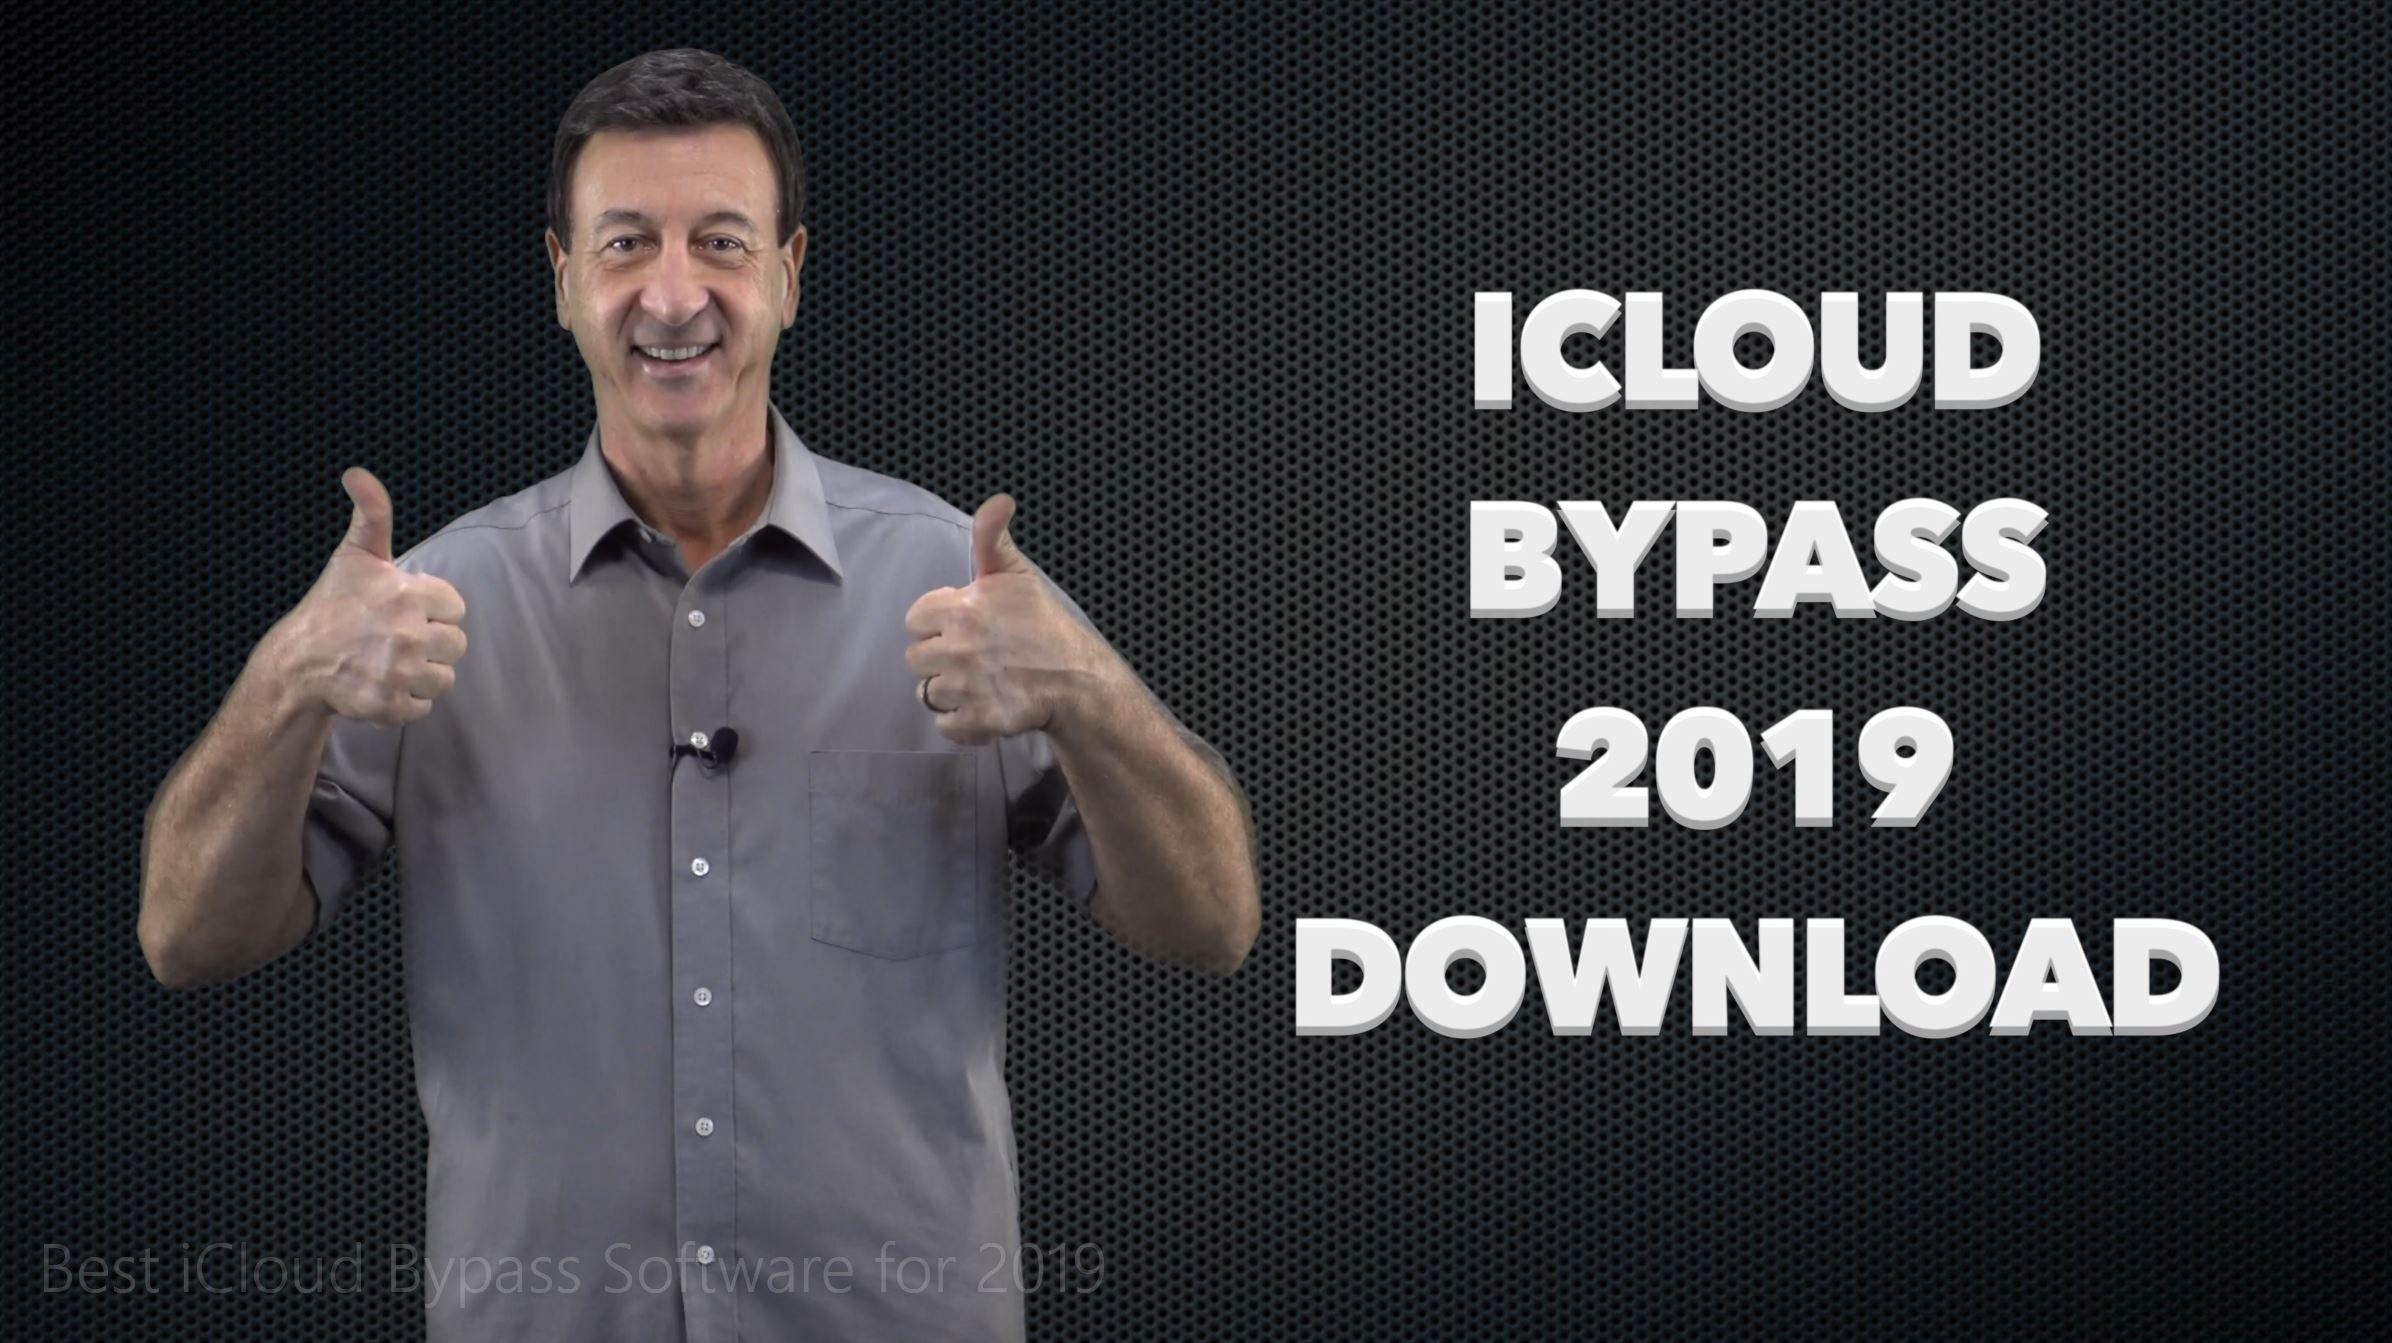 Best iCloud Bypass Software for 2019